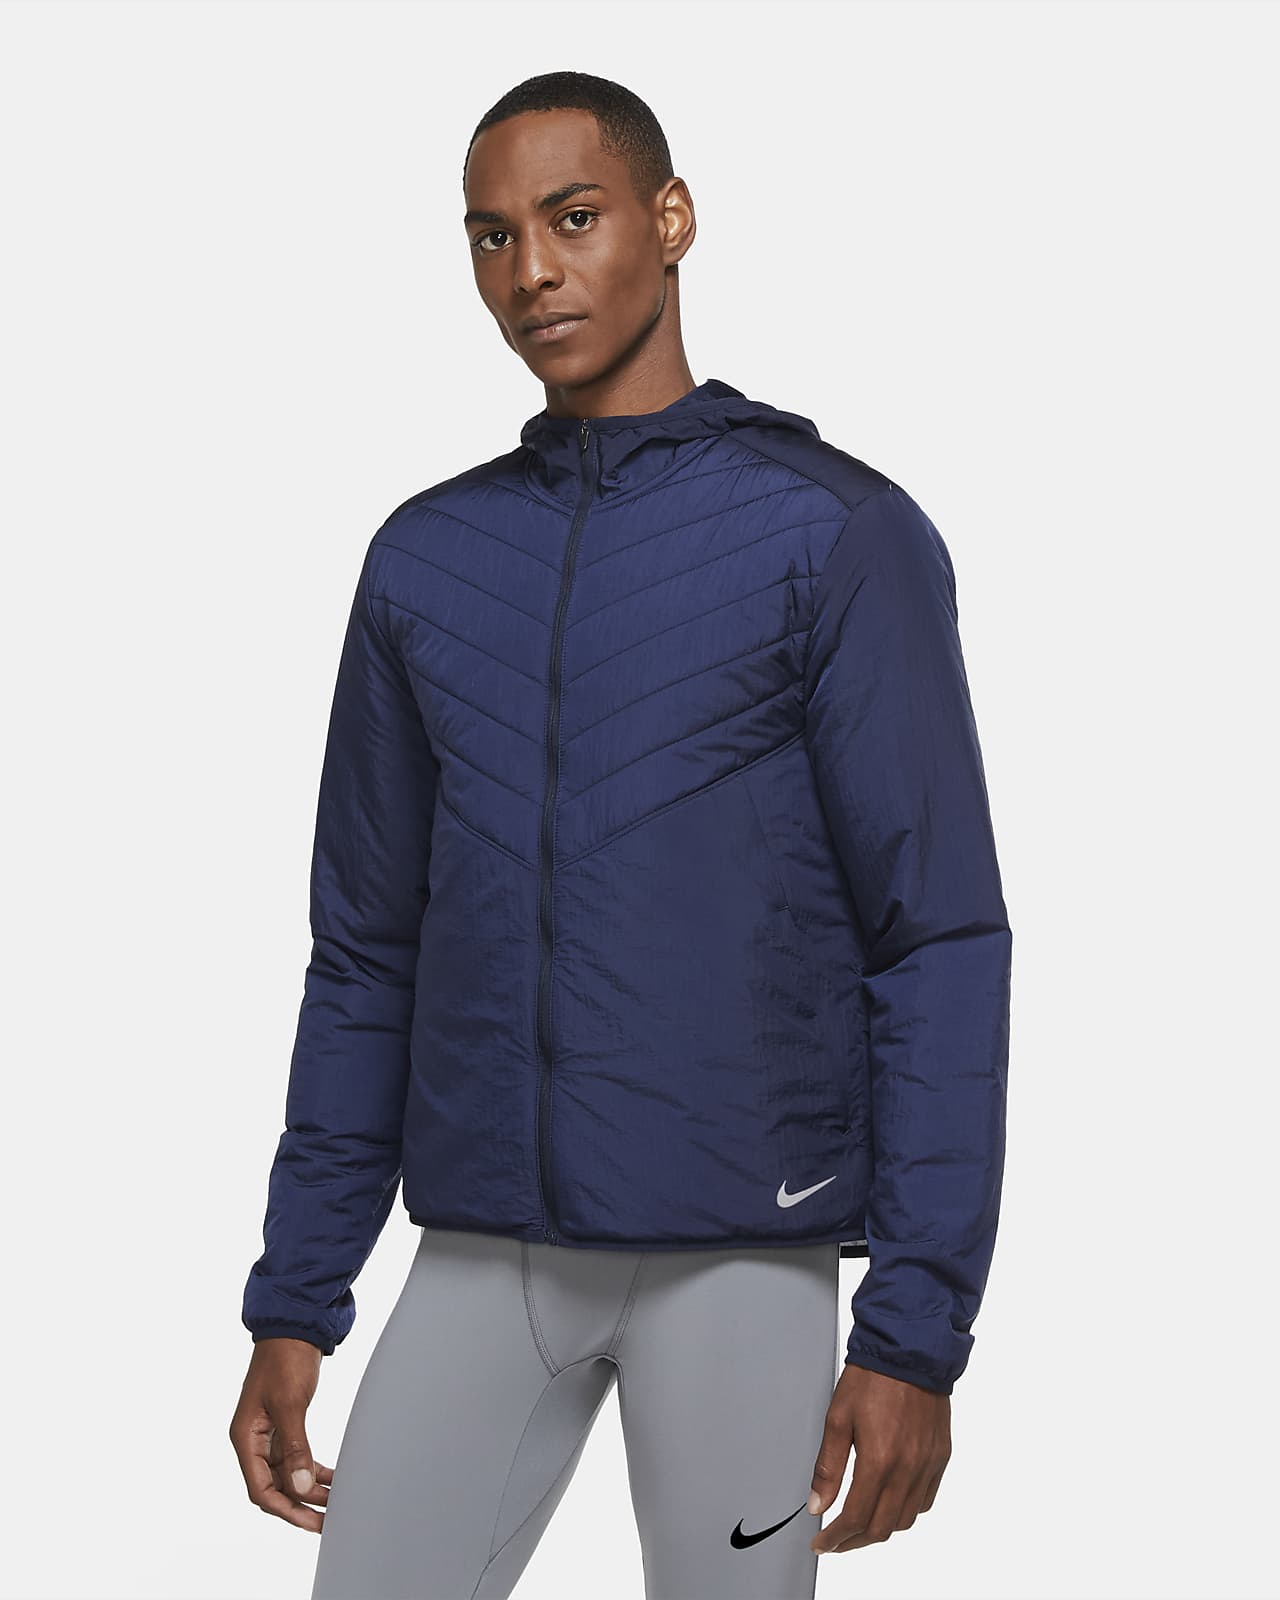 Nike AeroLayer Men's Running Jacket